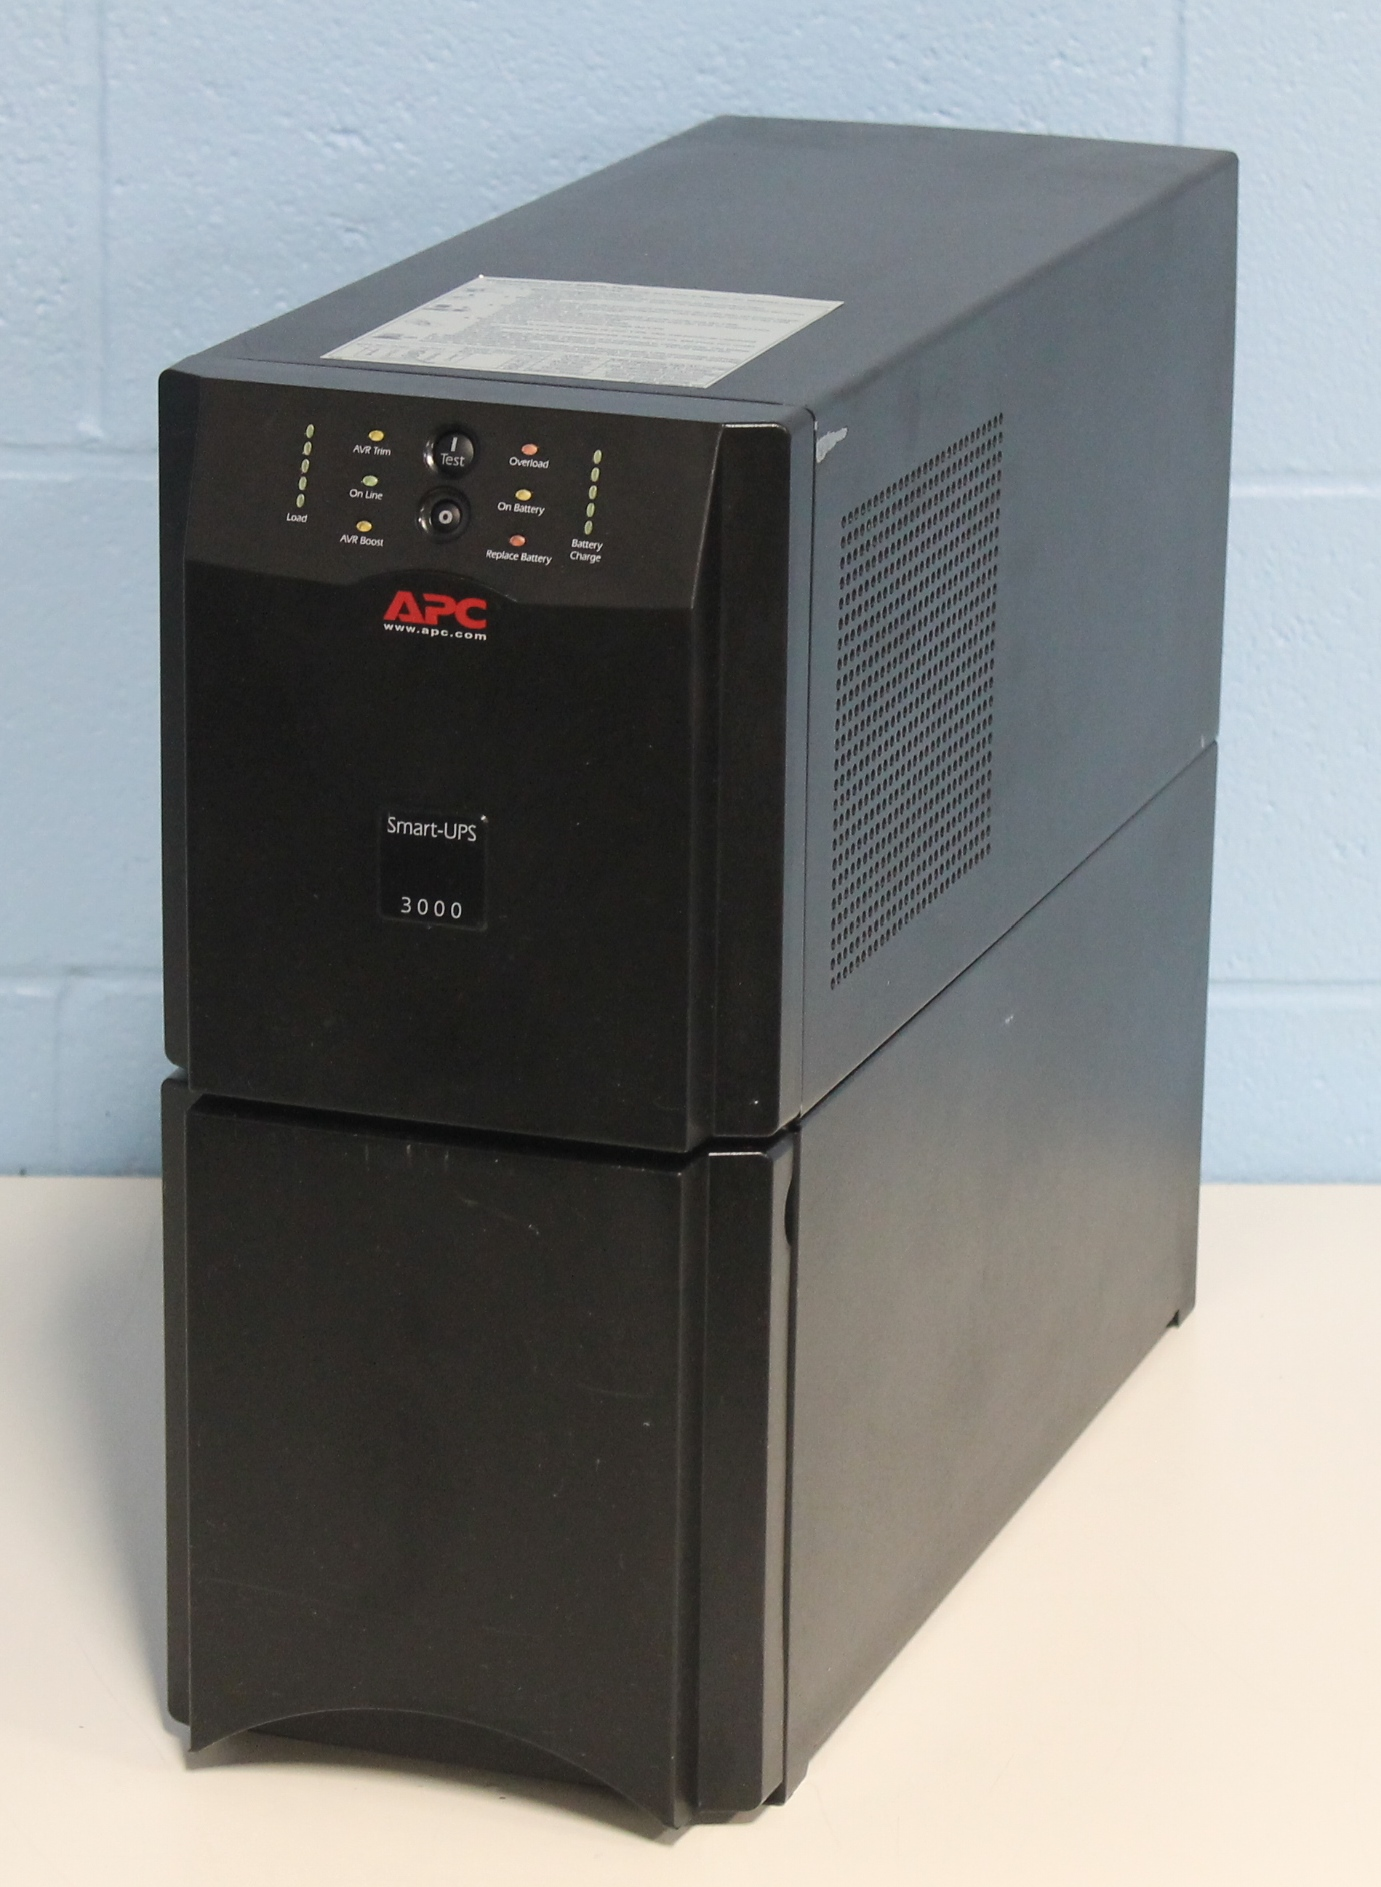 Back Up Sensors >> Refurbished APC SUA3000 Smart-UPS 3000VA 120V